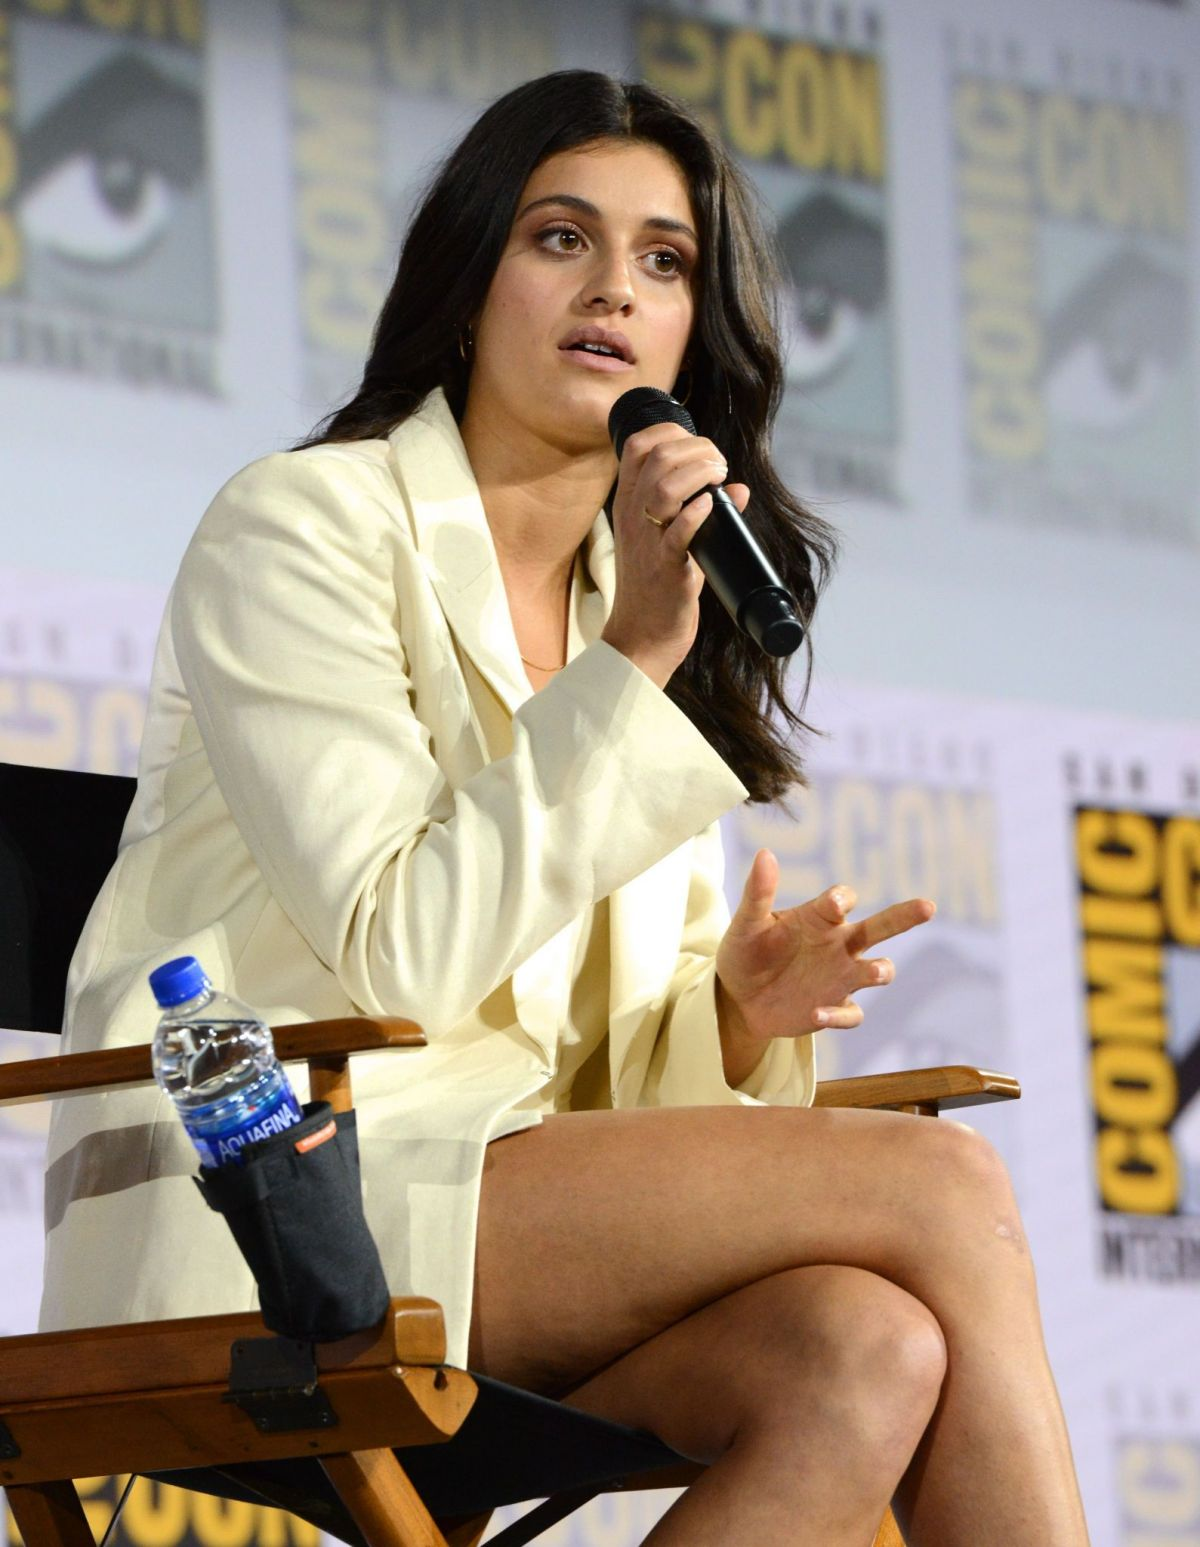 ANYA CHALOTRA at The Witcher Panel at Comic-con in San Diego 07/19/2019 - HawtCelebs